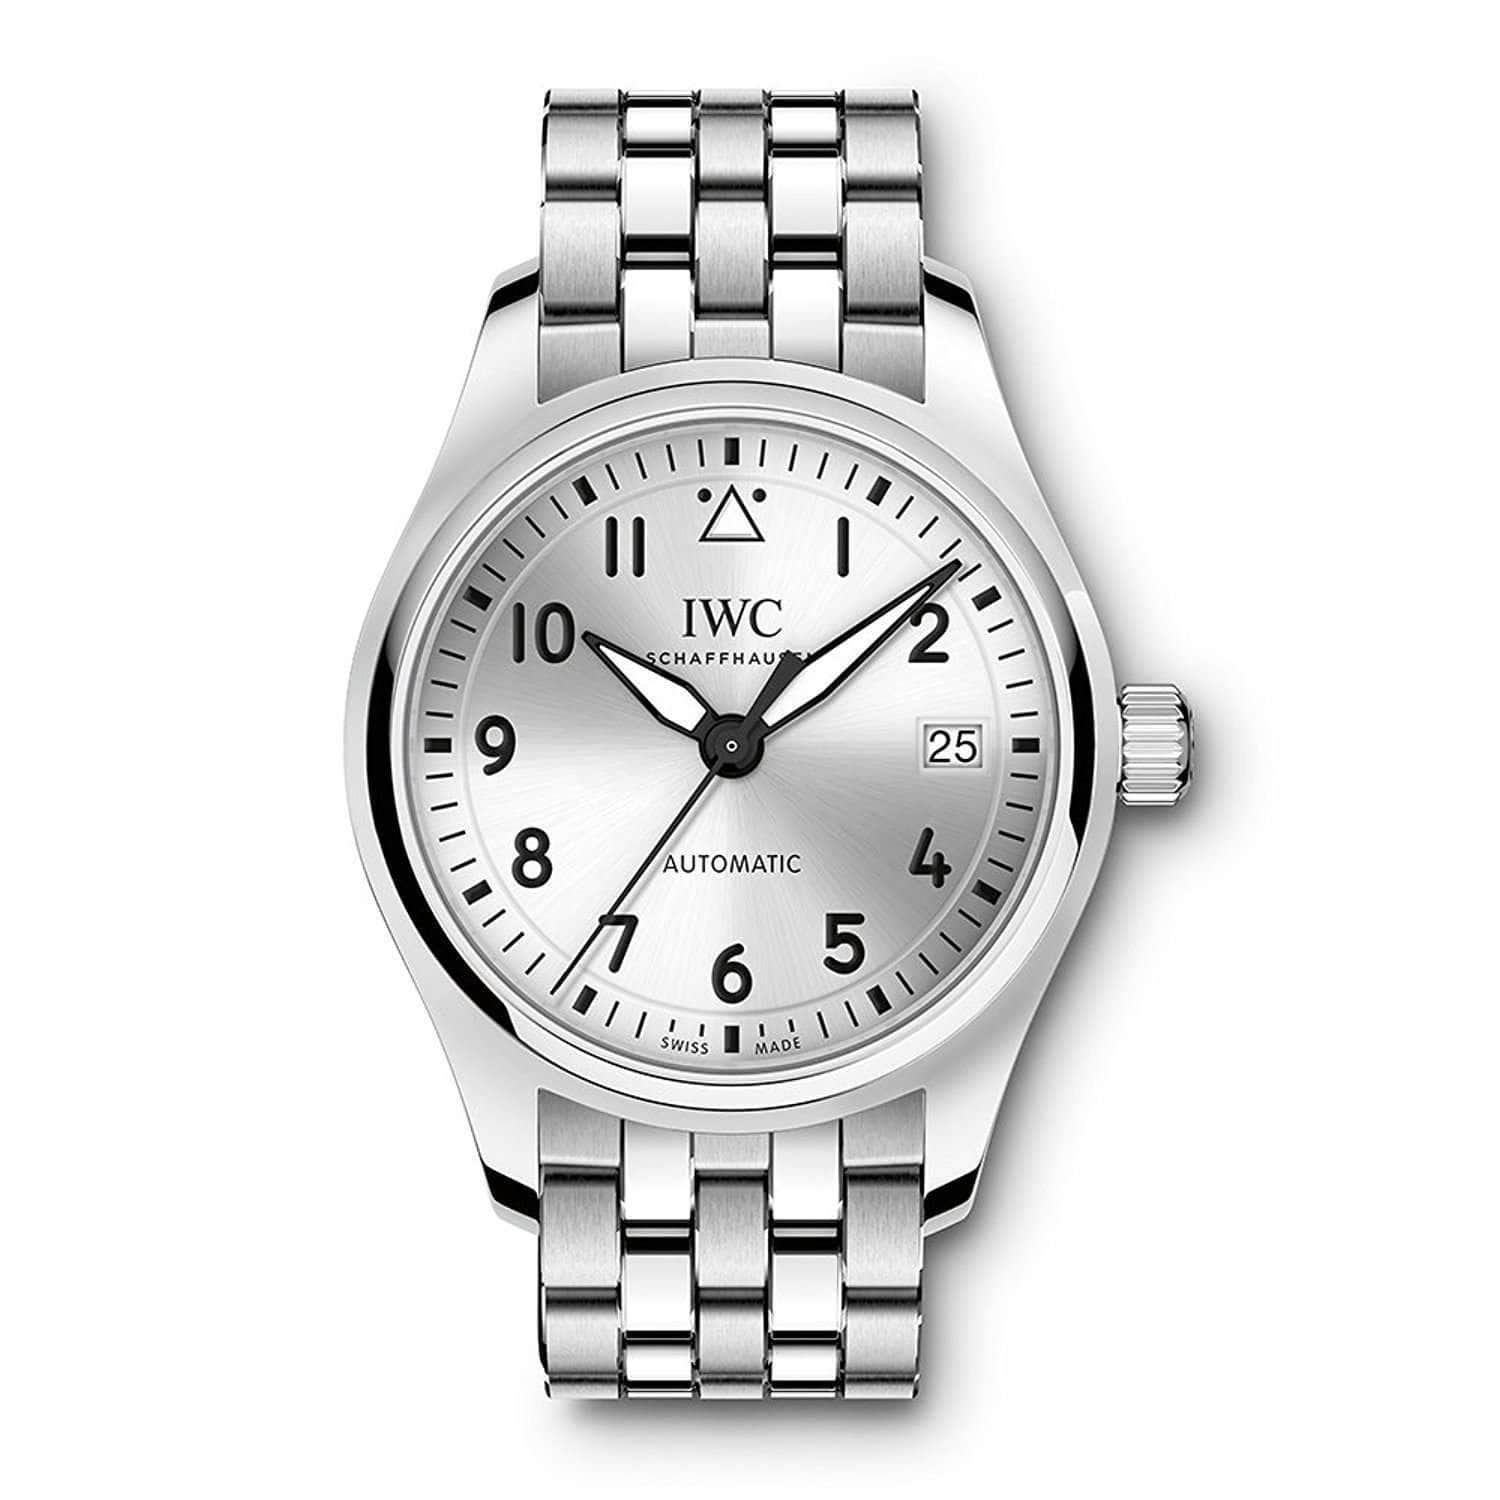 IWC PILOT'S AUTOMATIC SILVER MEN WATCH IW324006 - ROOK JAPAN